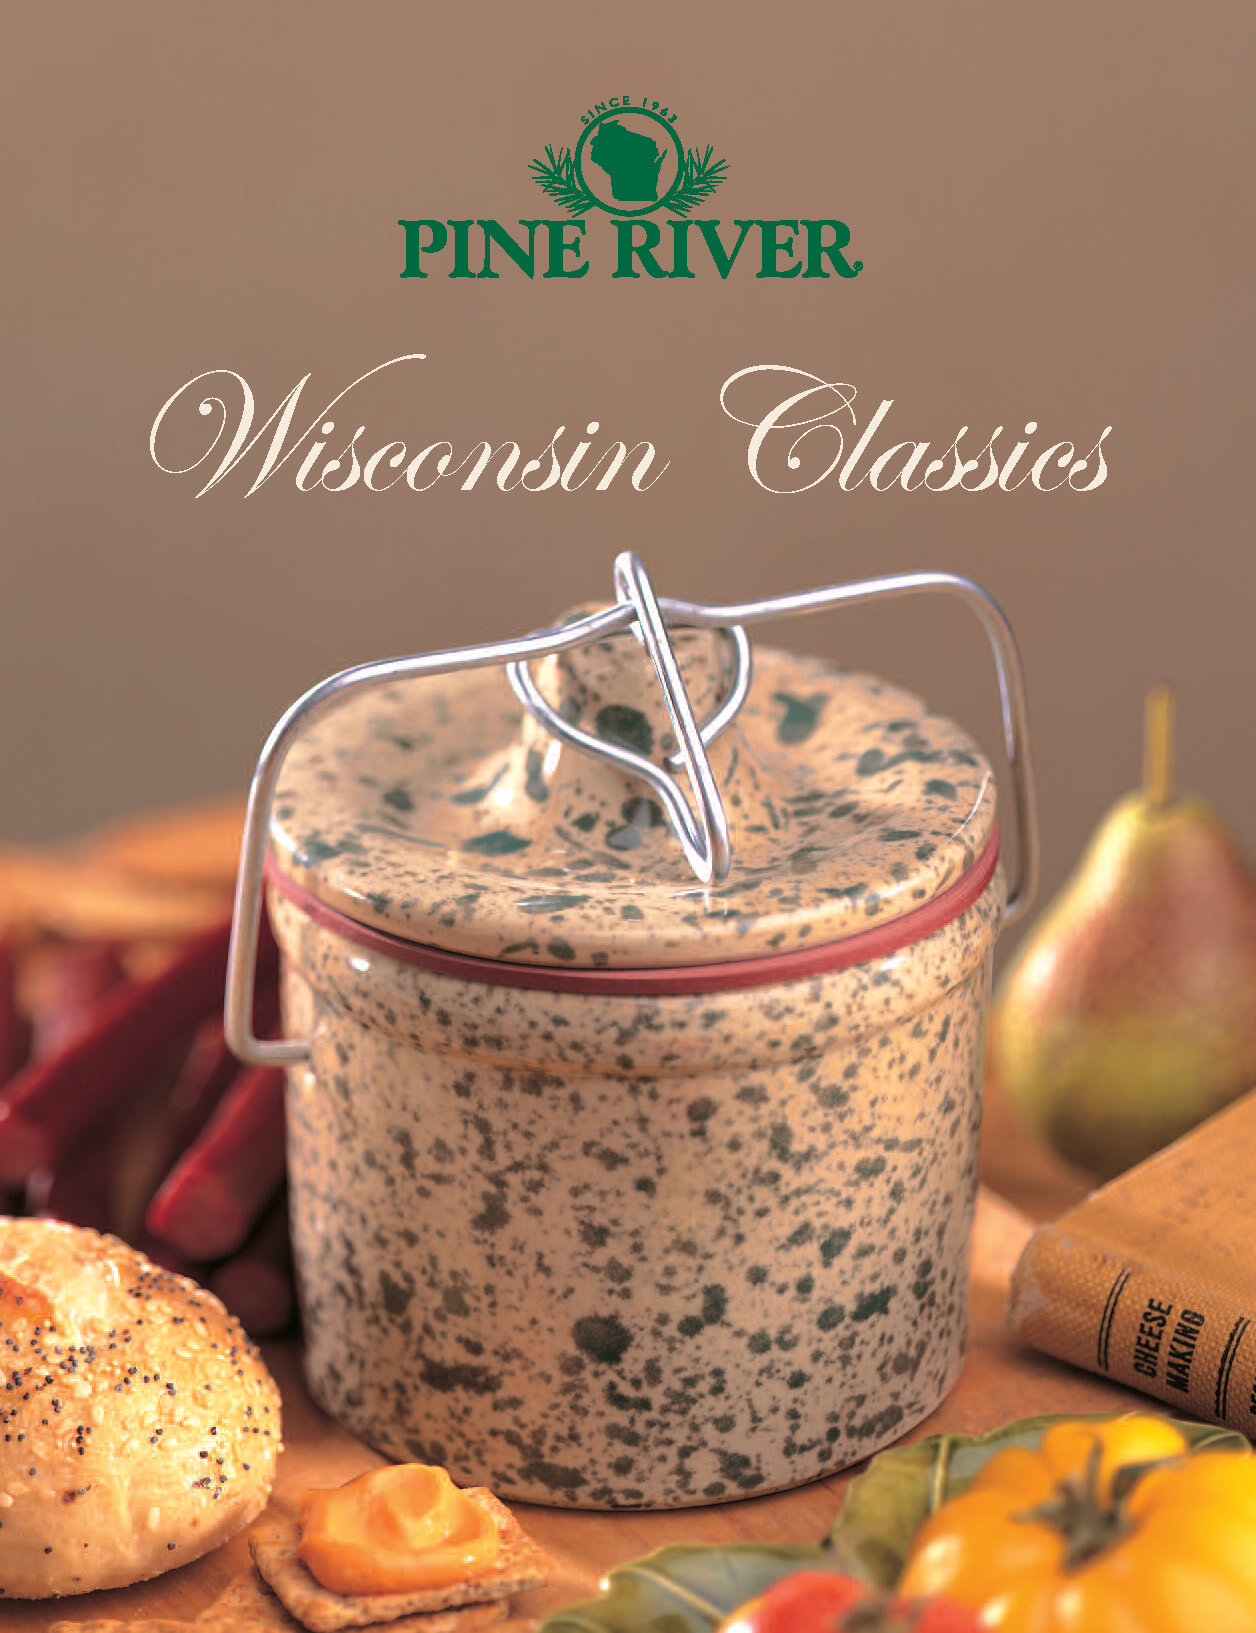 pine river wisconsin classics cover